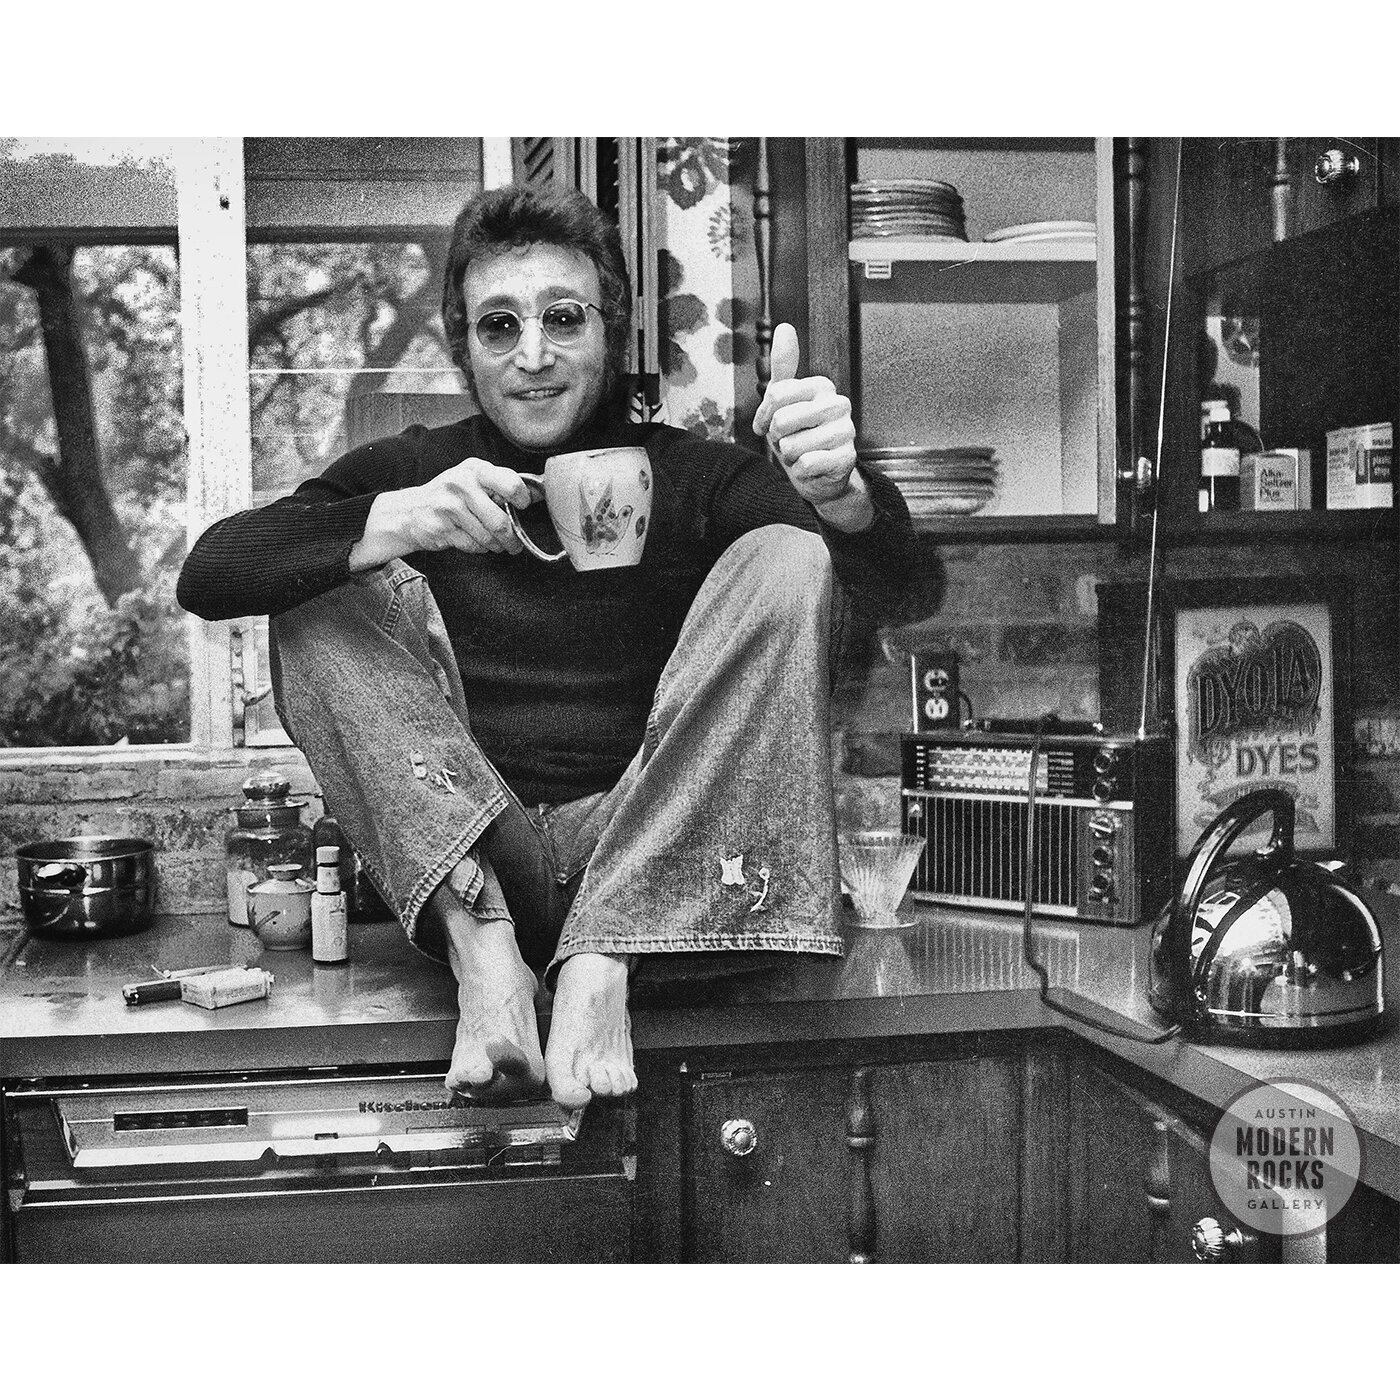 John Lennon In The Kitchen By Michael Brennan Buy Signed Limited Edition Prints